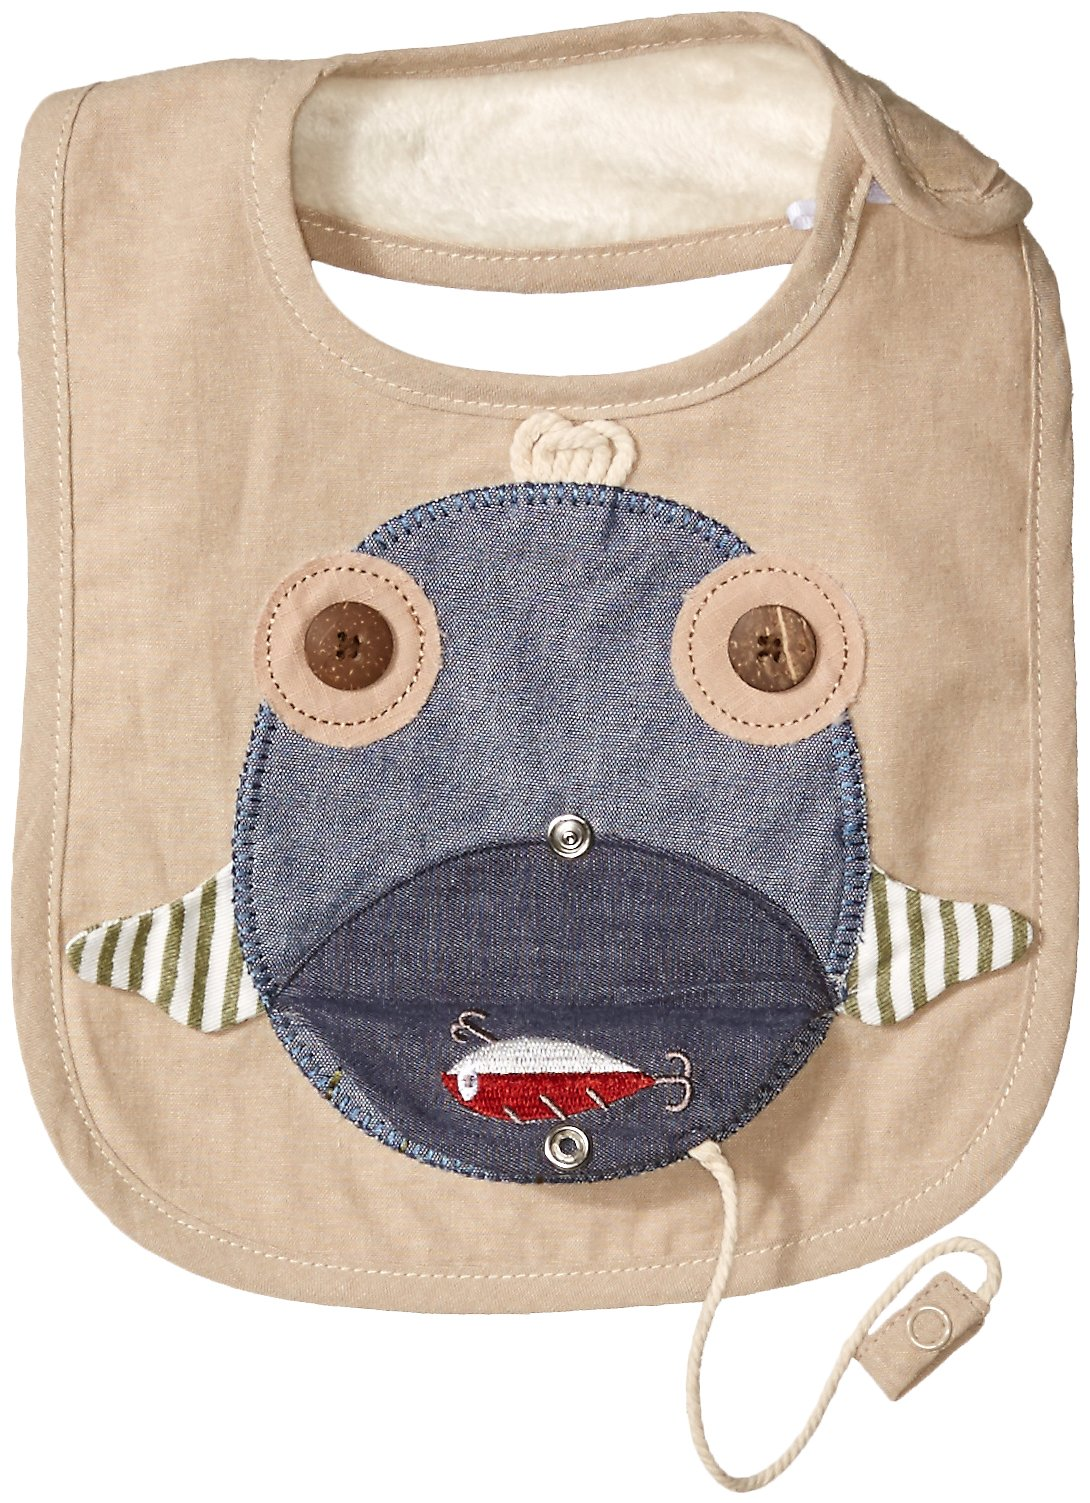 Mud Pie Baby Applique Bib, Fish Face, One Size by Mud Pie (Image #2)